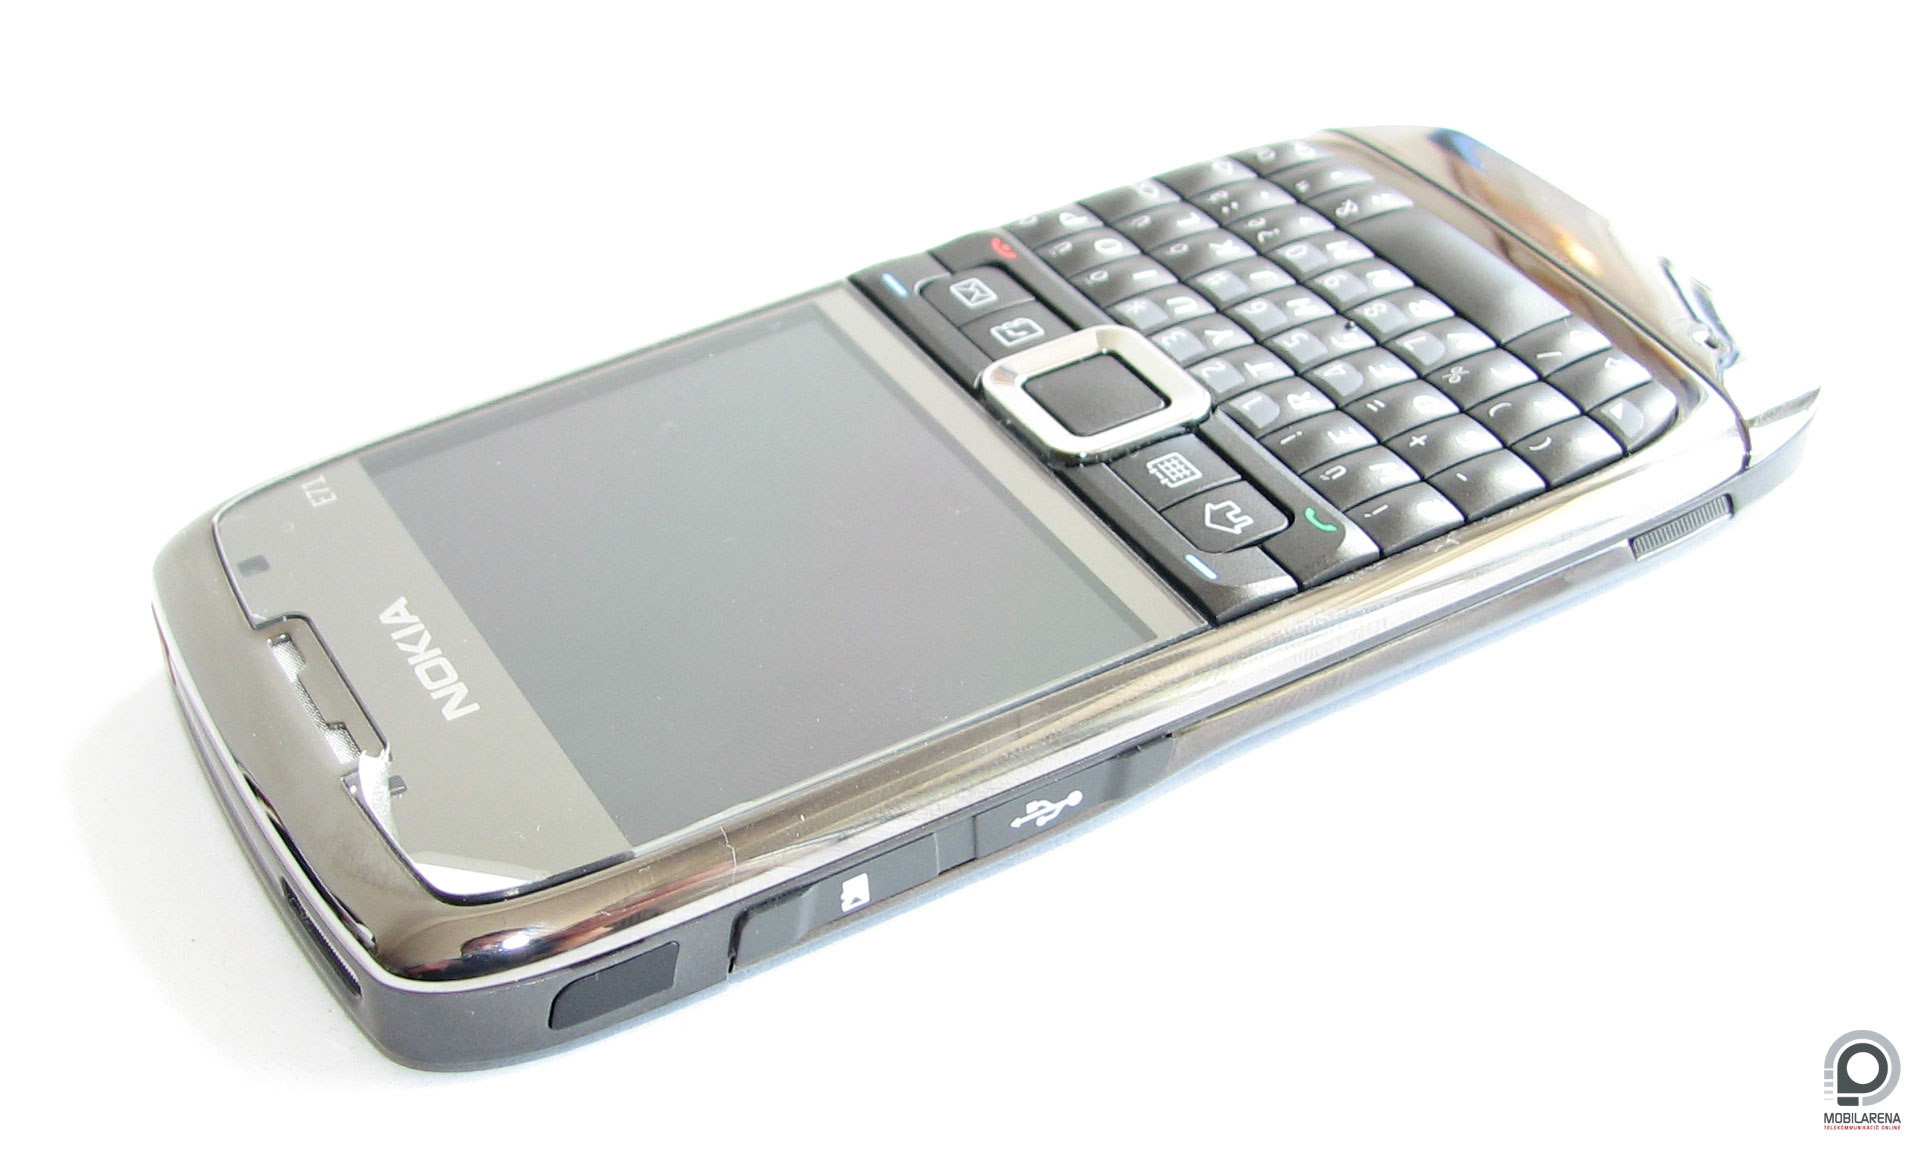 Nokia E71 Application Software Download - cyloading